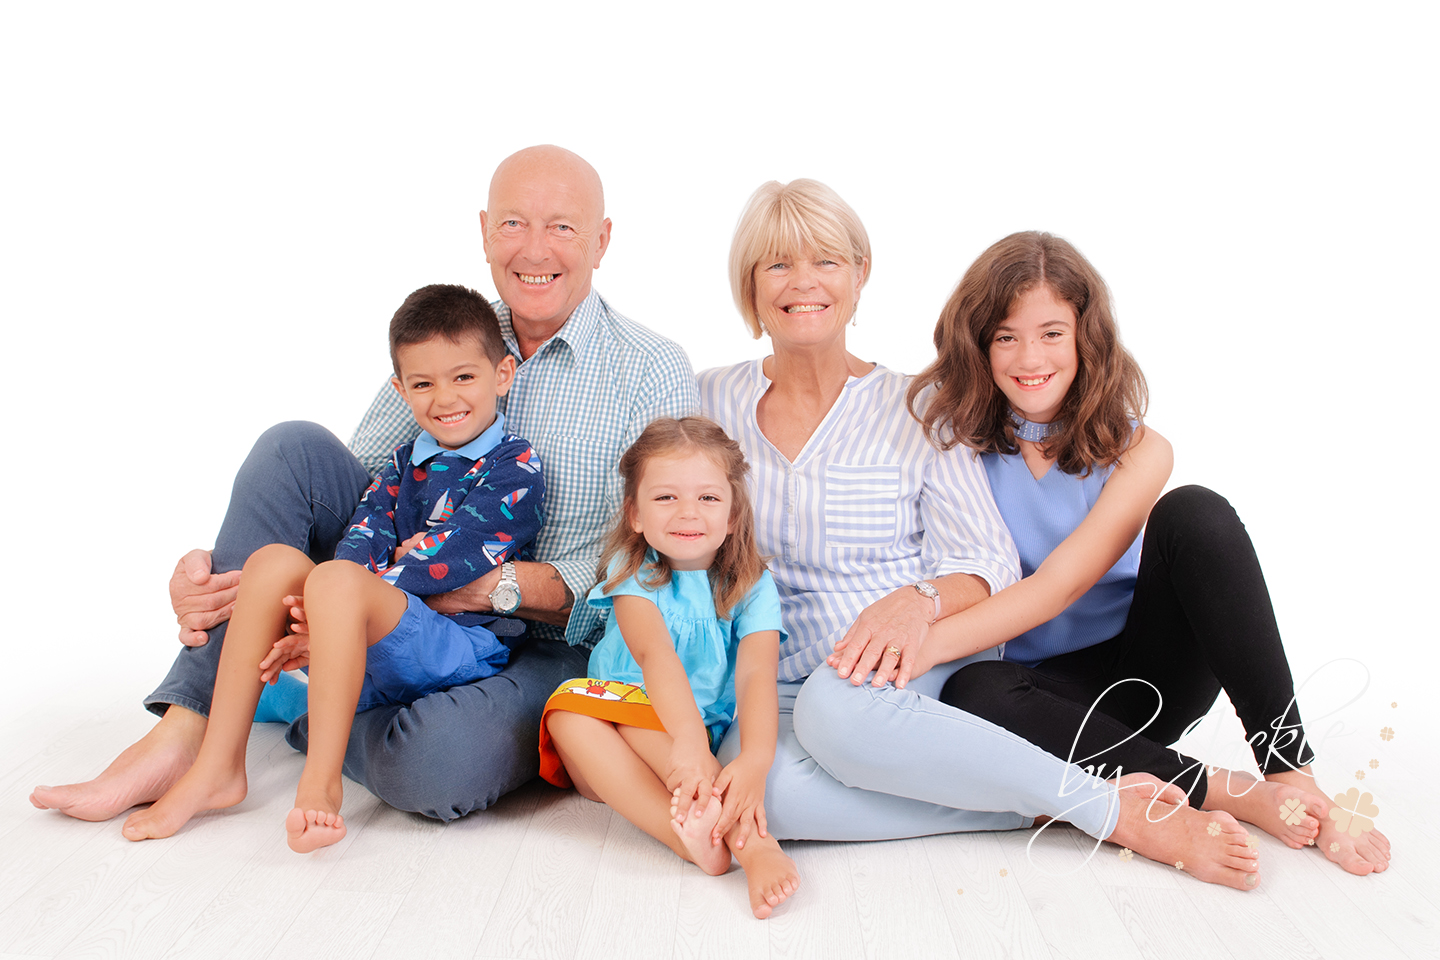 Family portrait photography in studio. Image copyright By Jackie Photography, in Market Weighton, York, Yorkshire UK